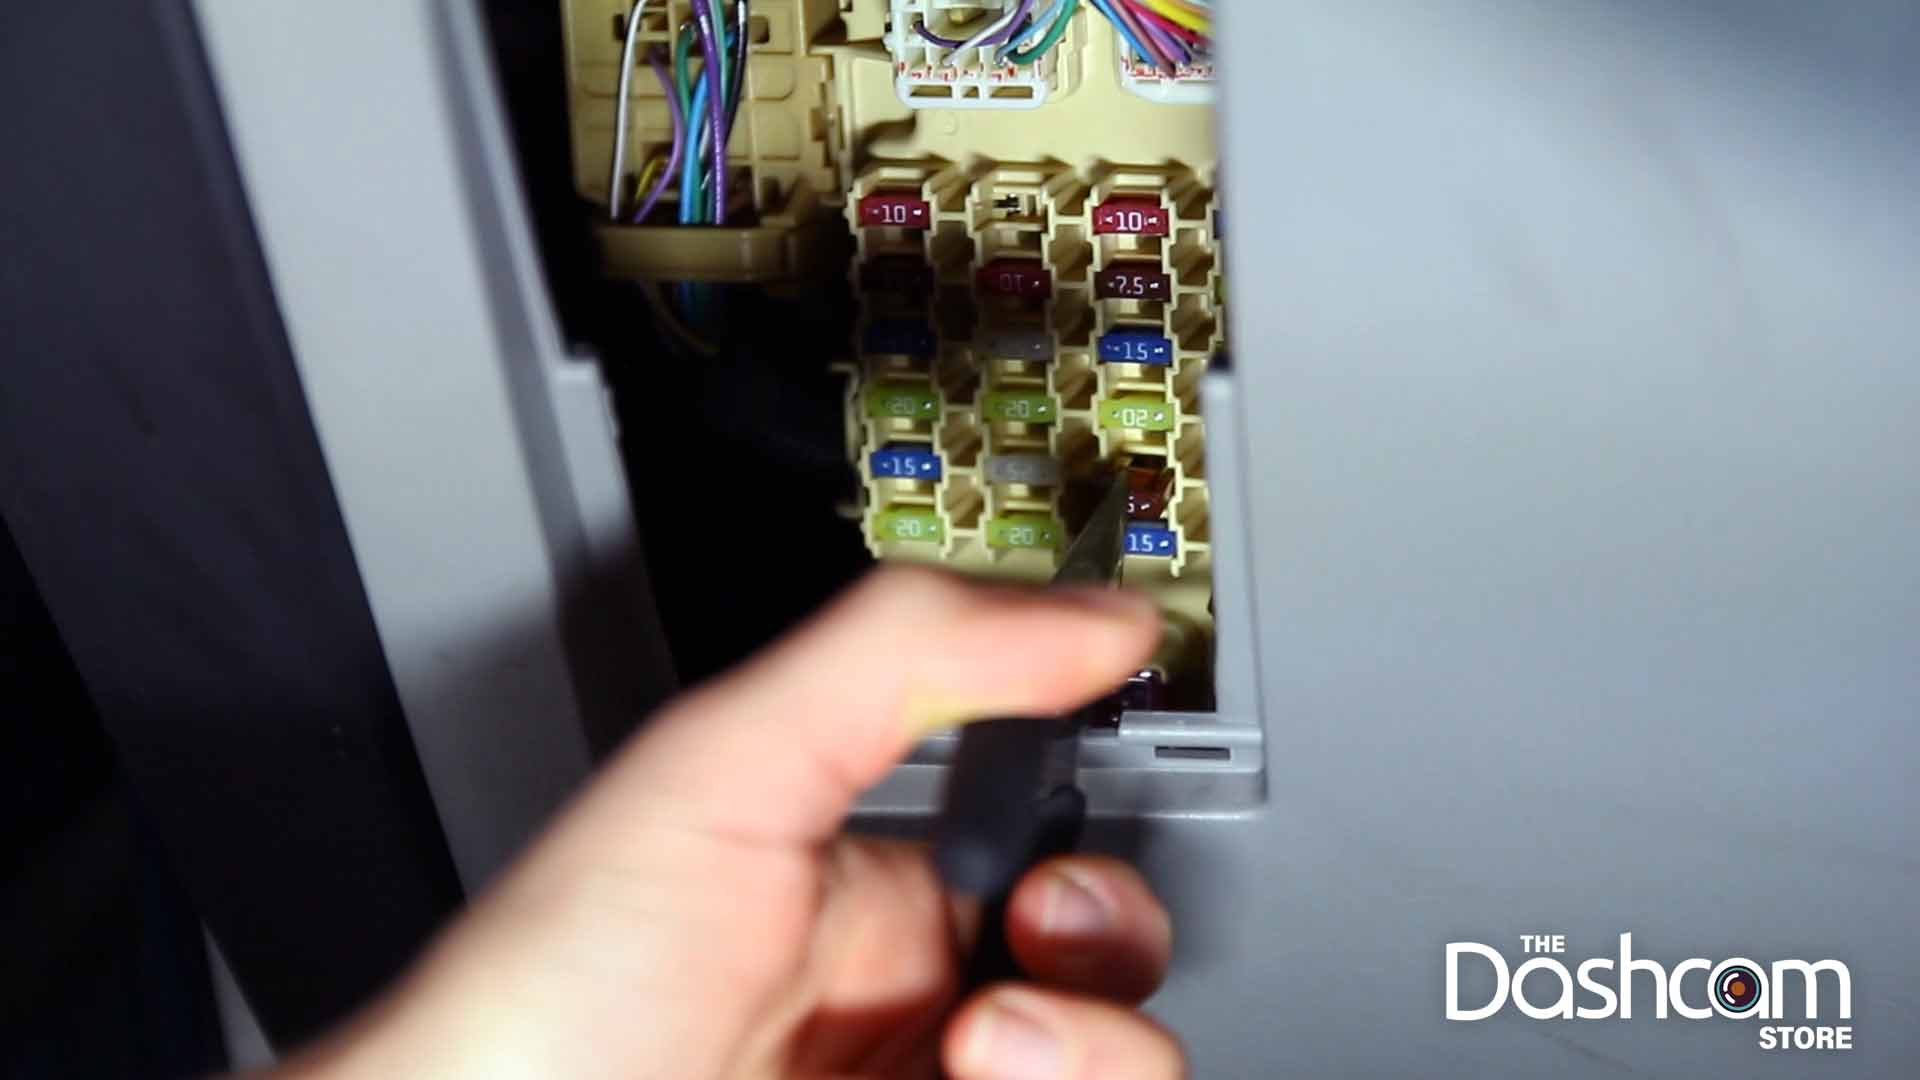 What Does Iod Stand For In Fuse Box